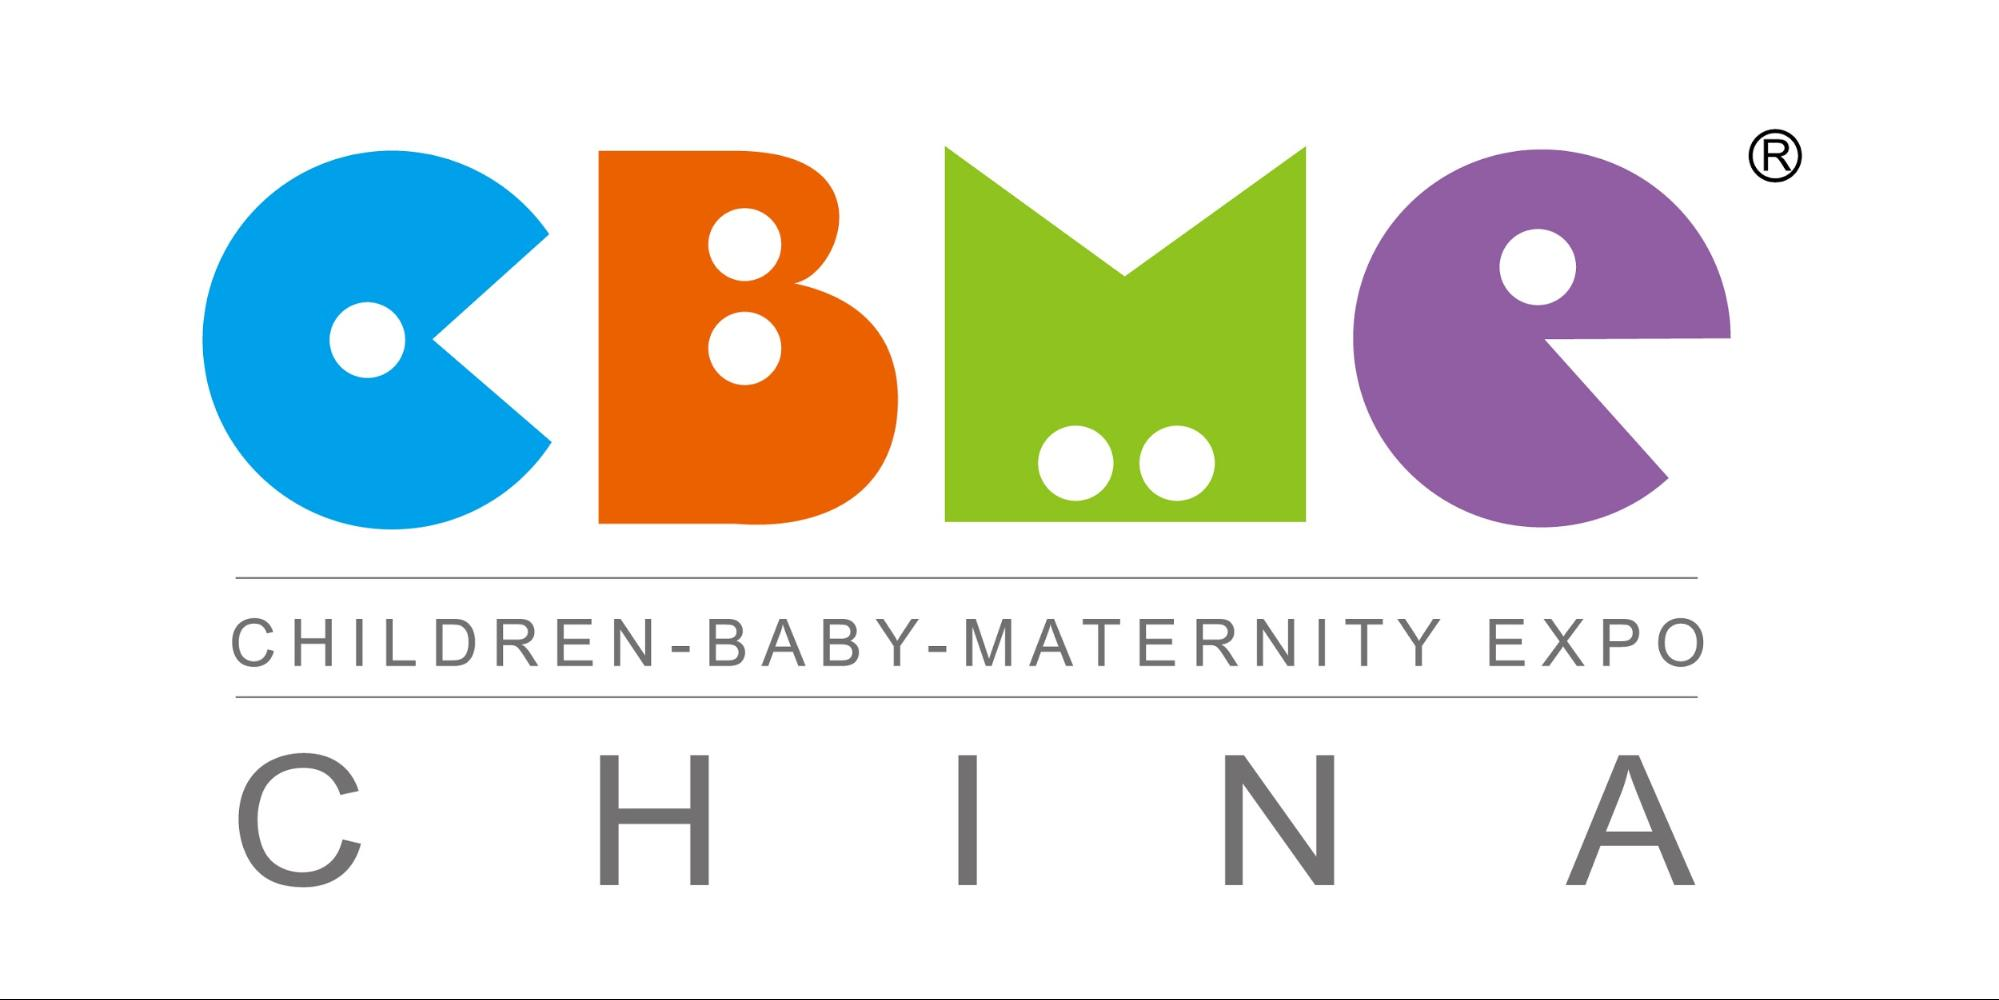 Children - Baby - Maternity Expo (CBME China)